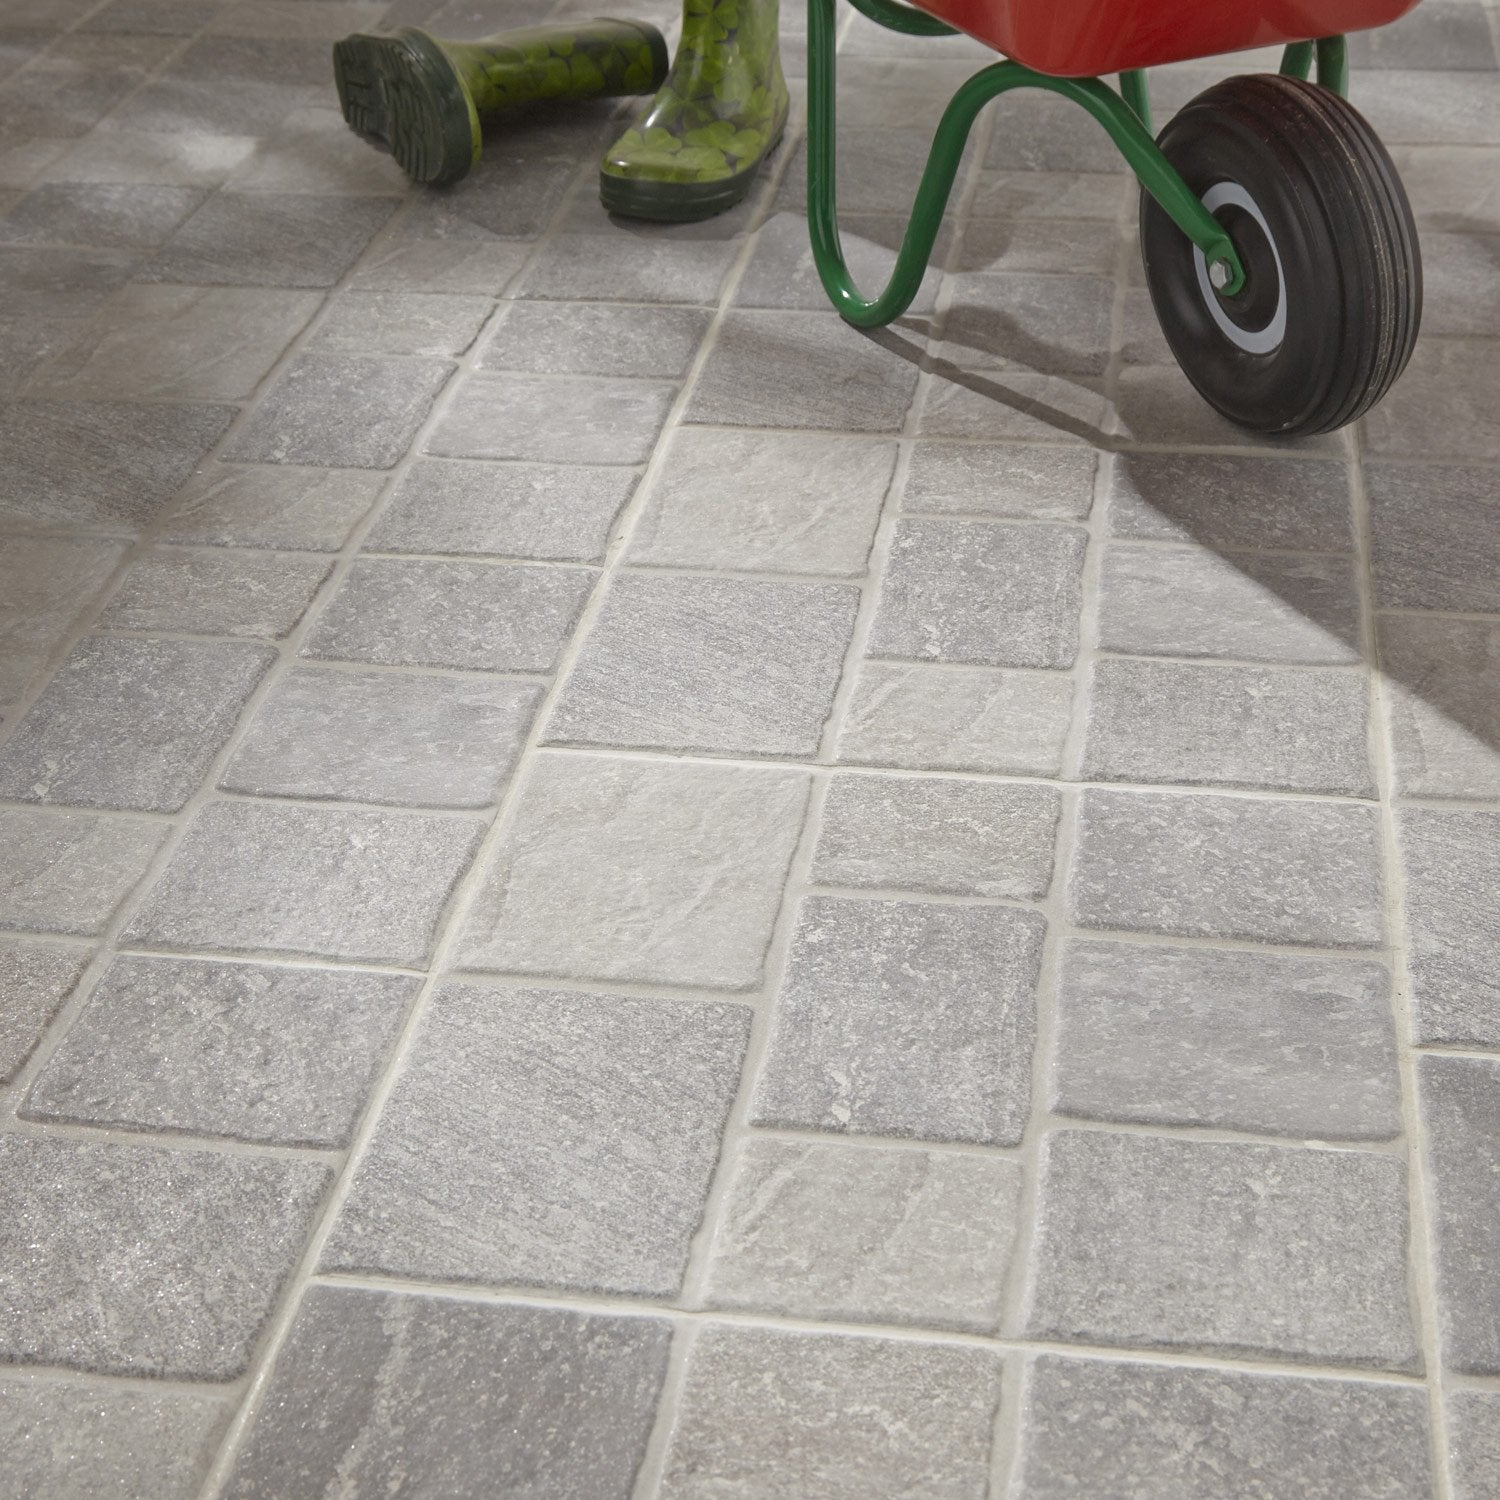 Carrelage sol gris effet pierre sanpietrini x cm for Carrelage exterieur travertin